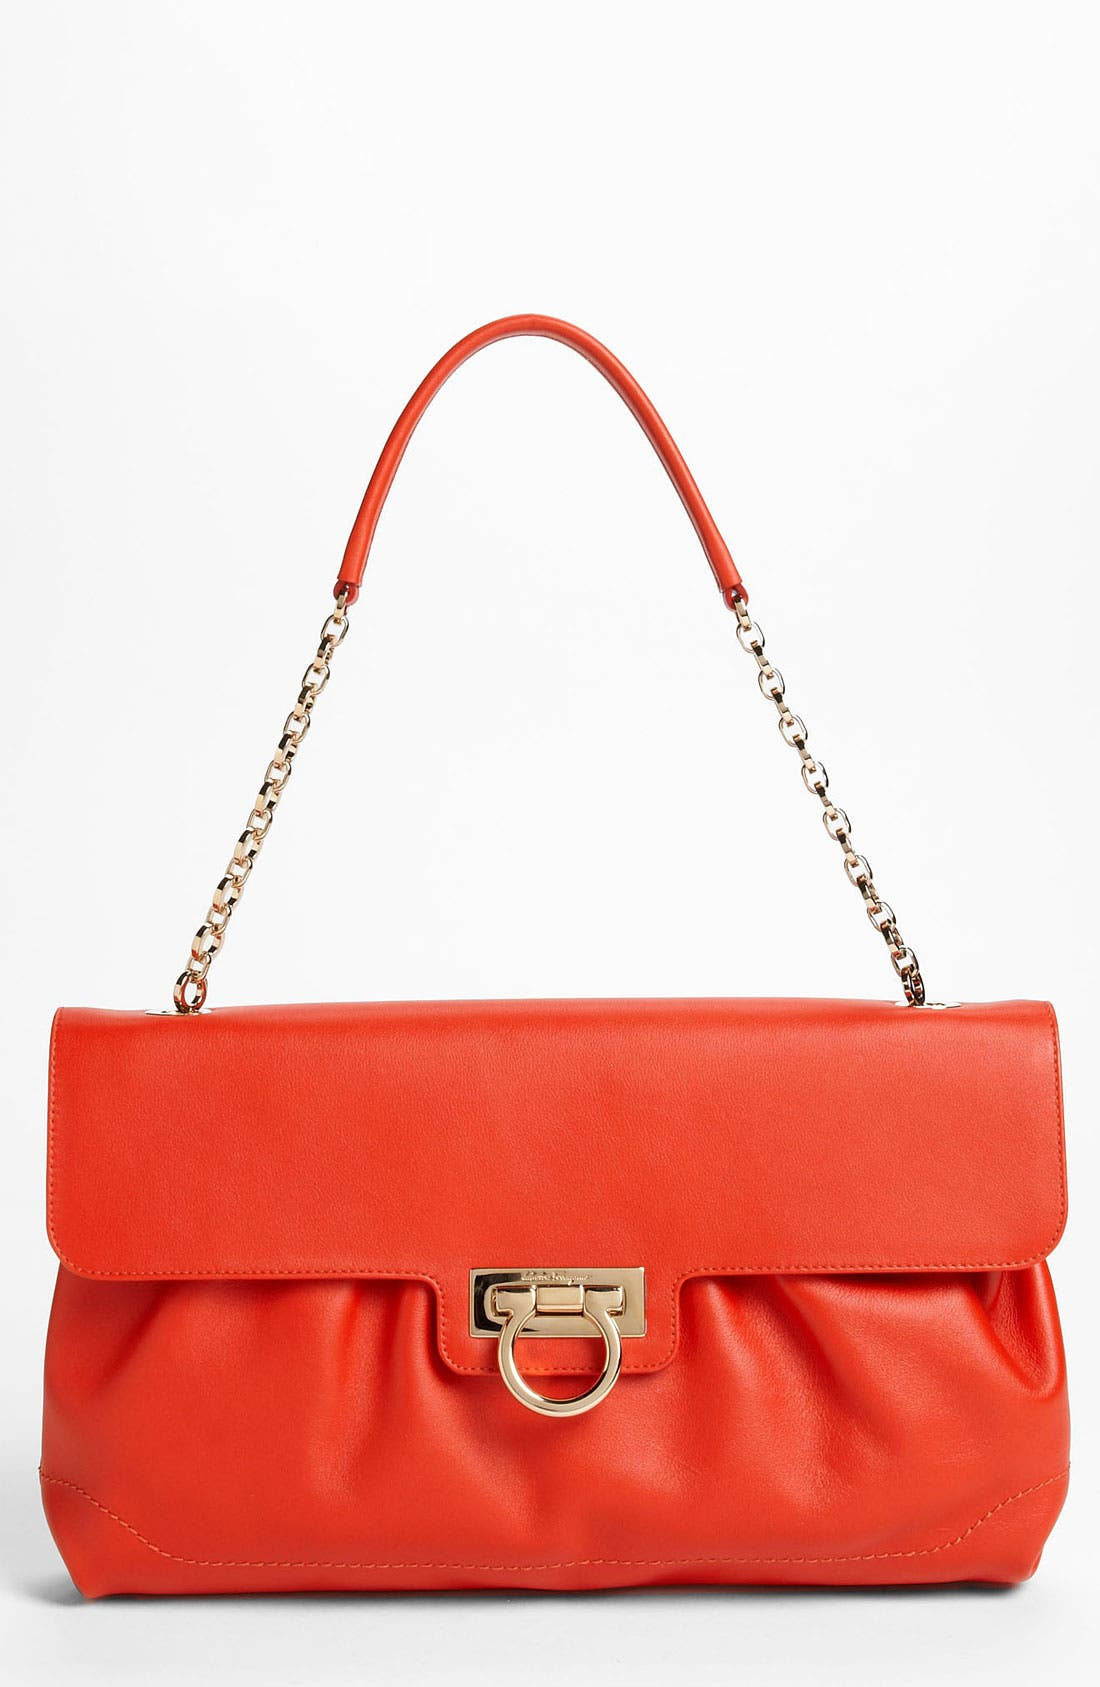 Alternate Image 1 Selected - Salvatore Ferragamo Chain Strap Leather Shoulder Bag